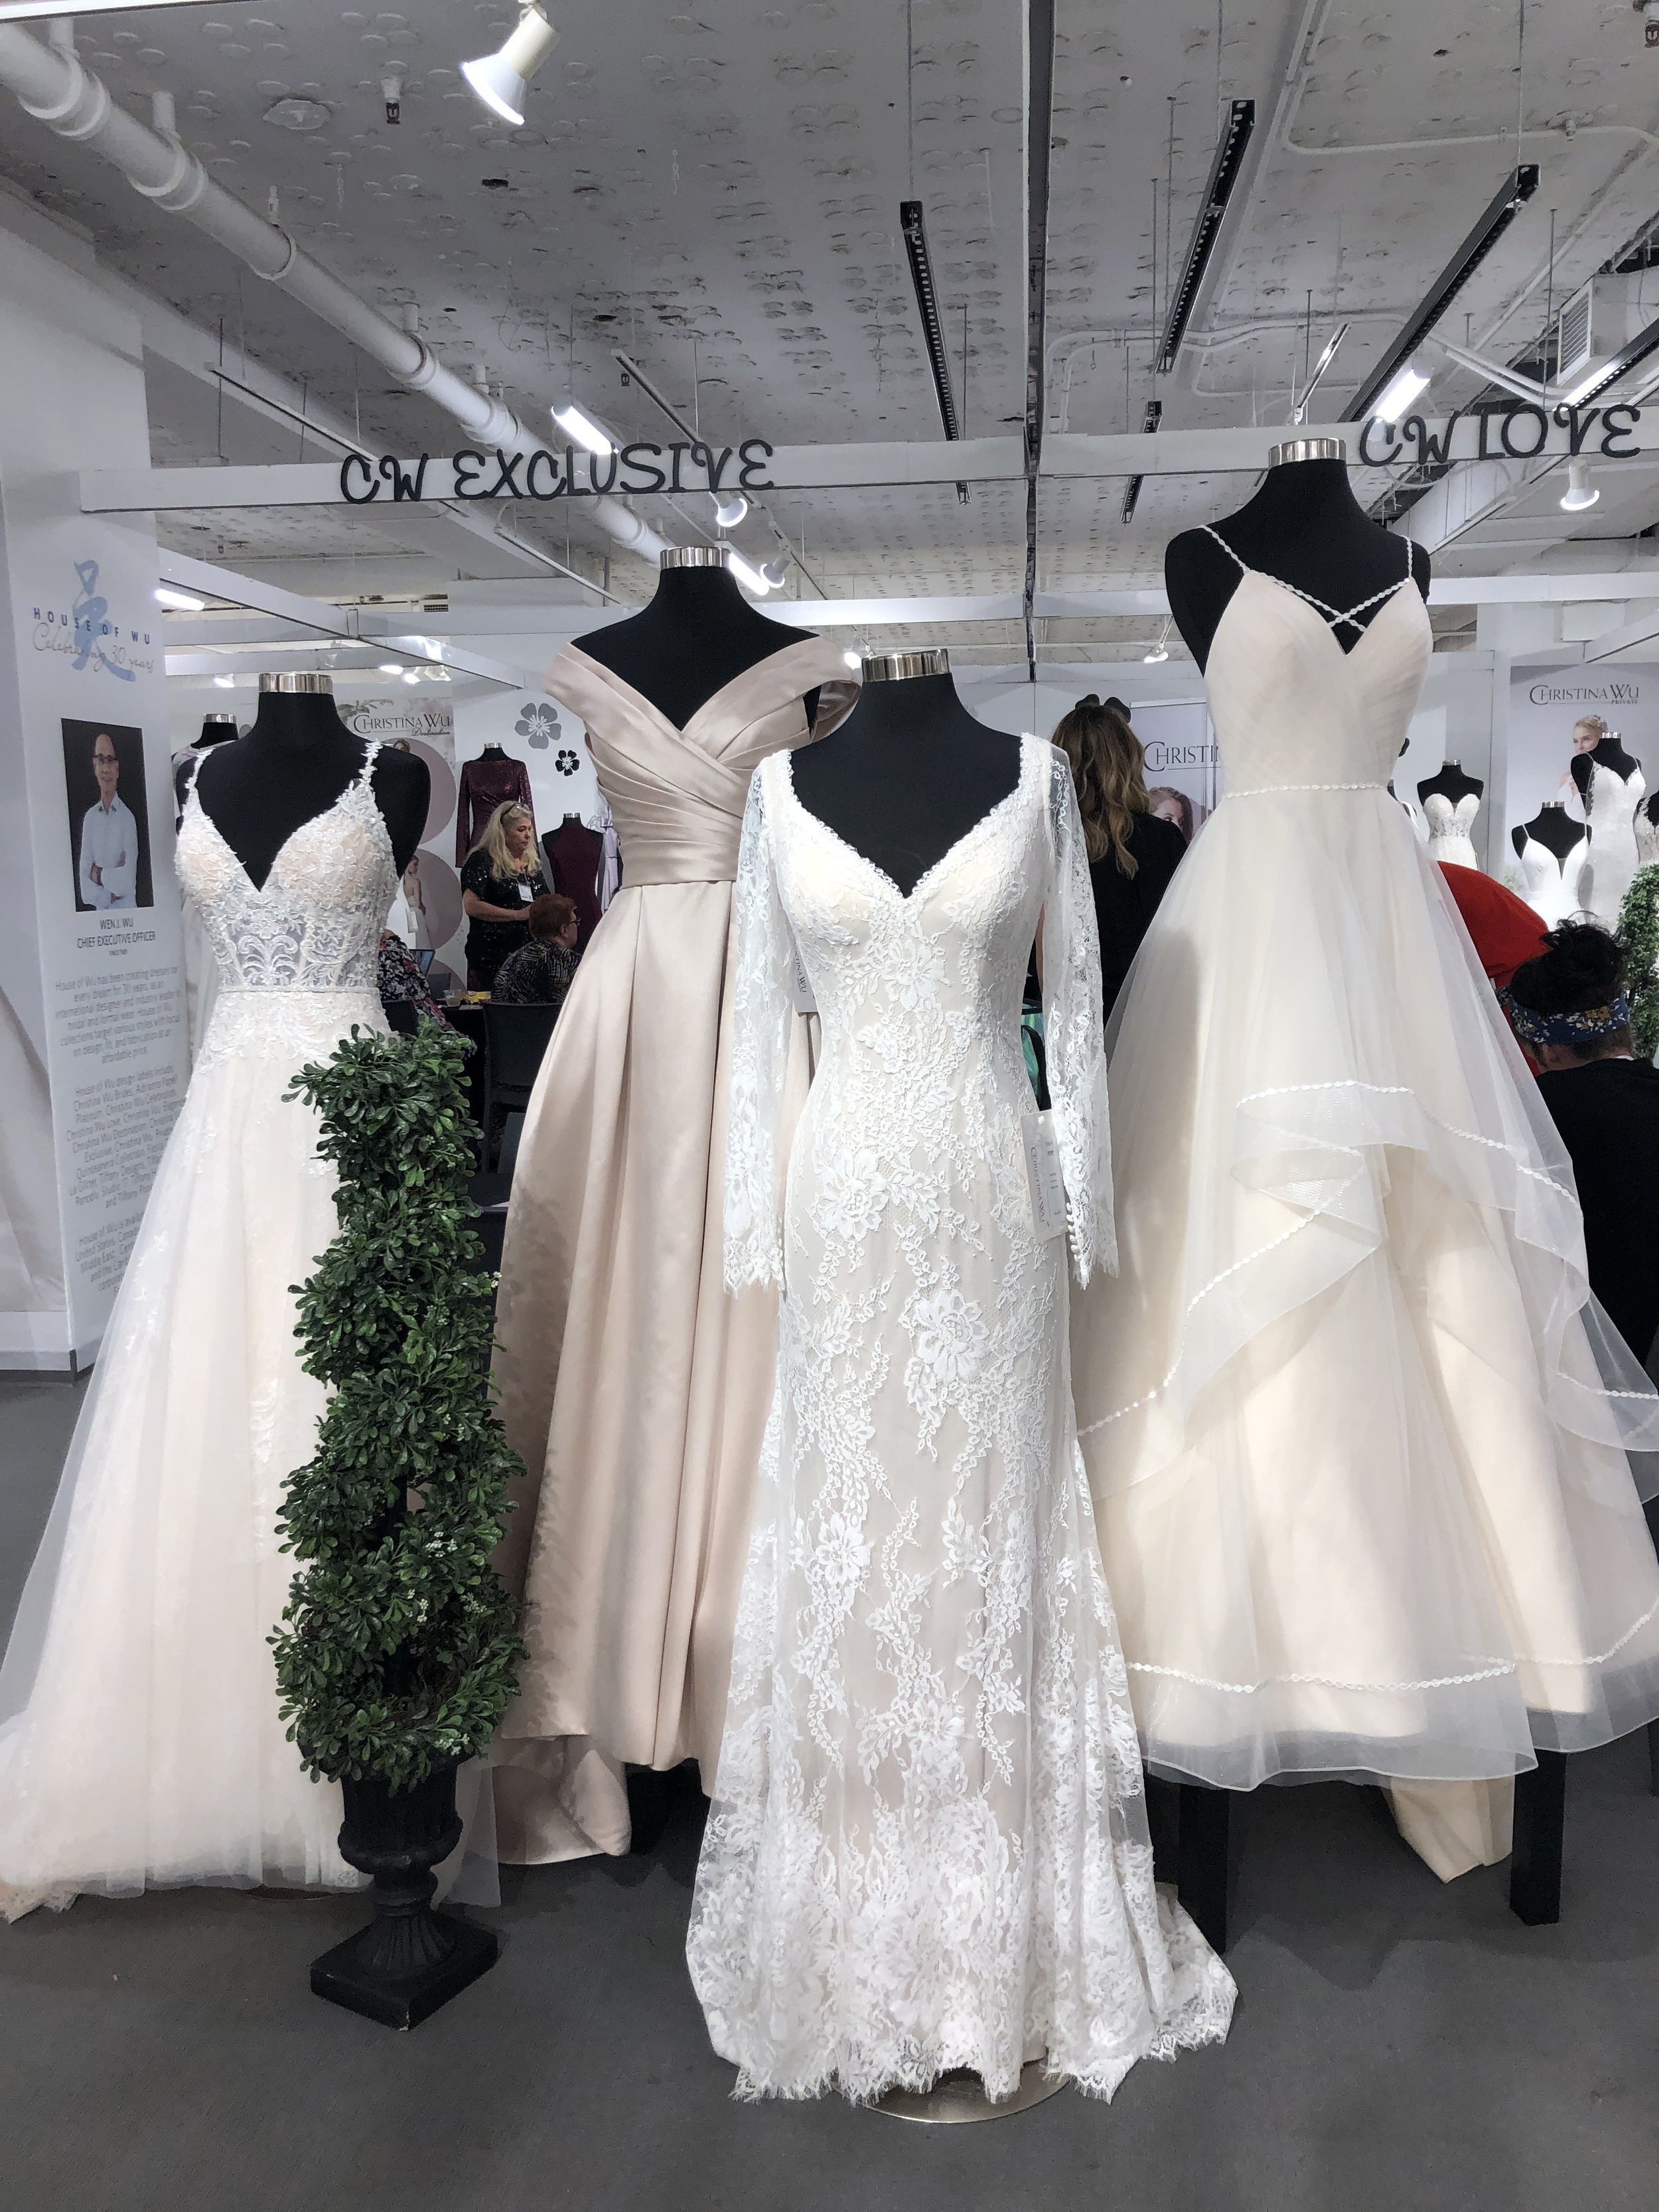 Something for everybride… - I think this display is really representative of everything that is happening in bridal fashion right now.Sheer bodices with visible bra cupsClassic shapes and fabricsLaceHorsehair trimStraps of all types